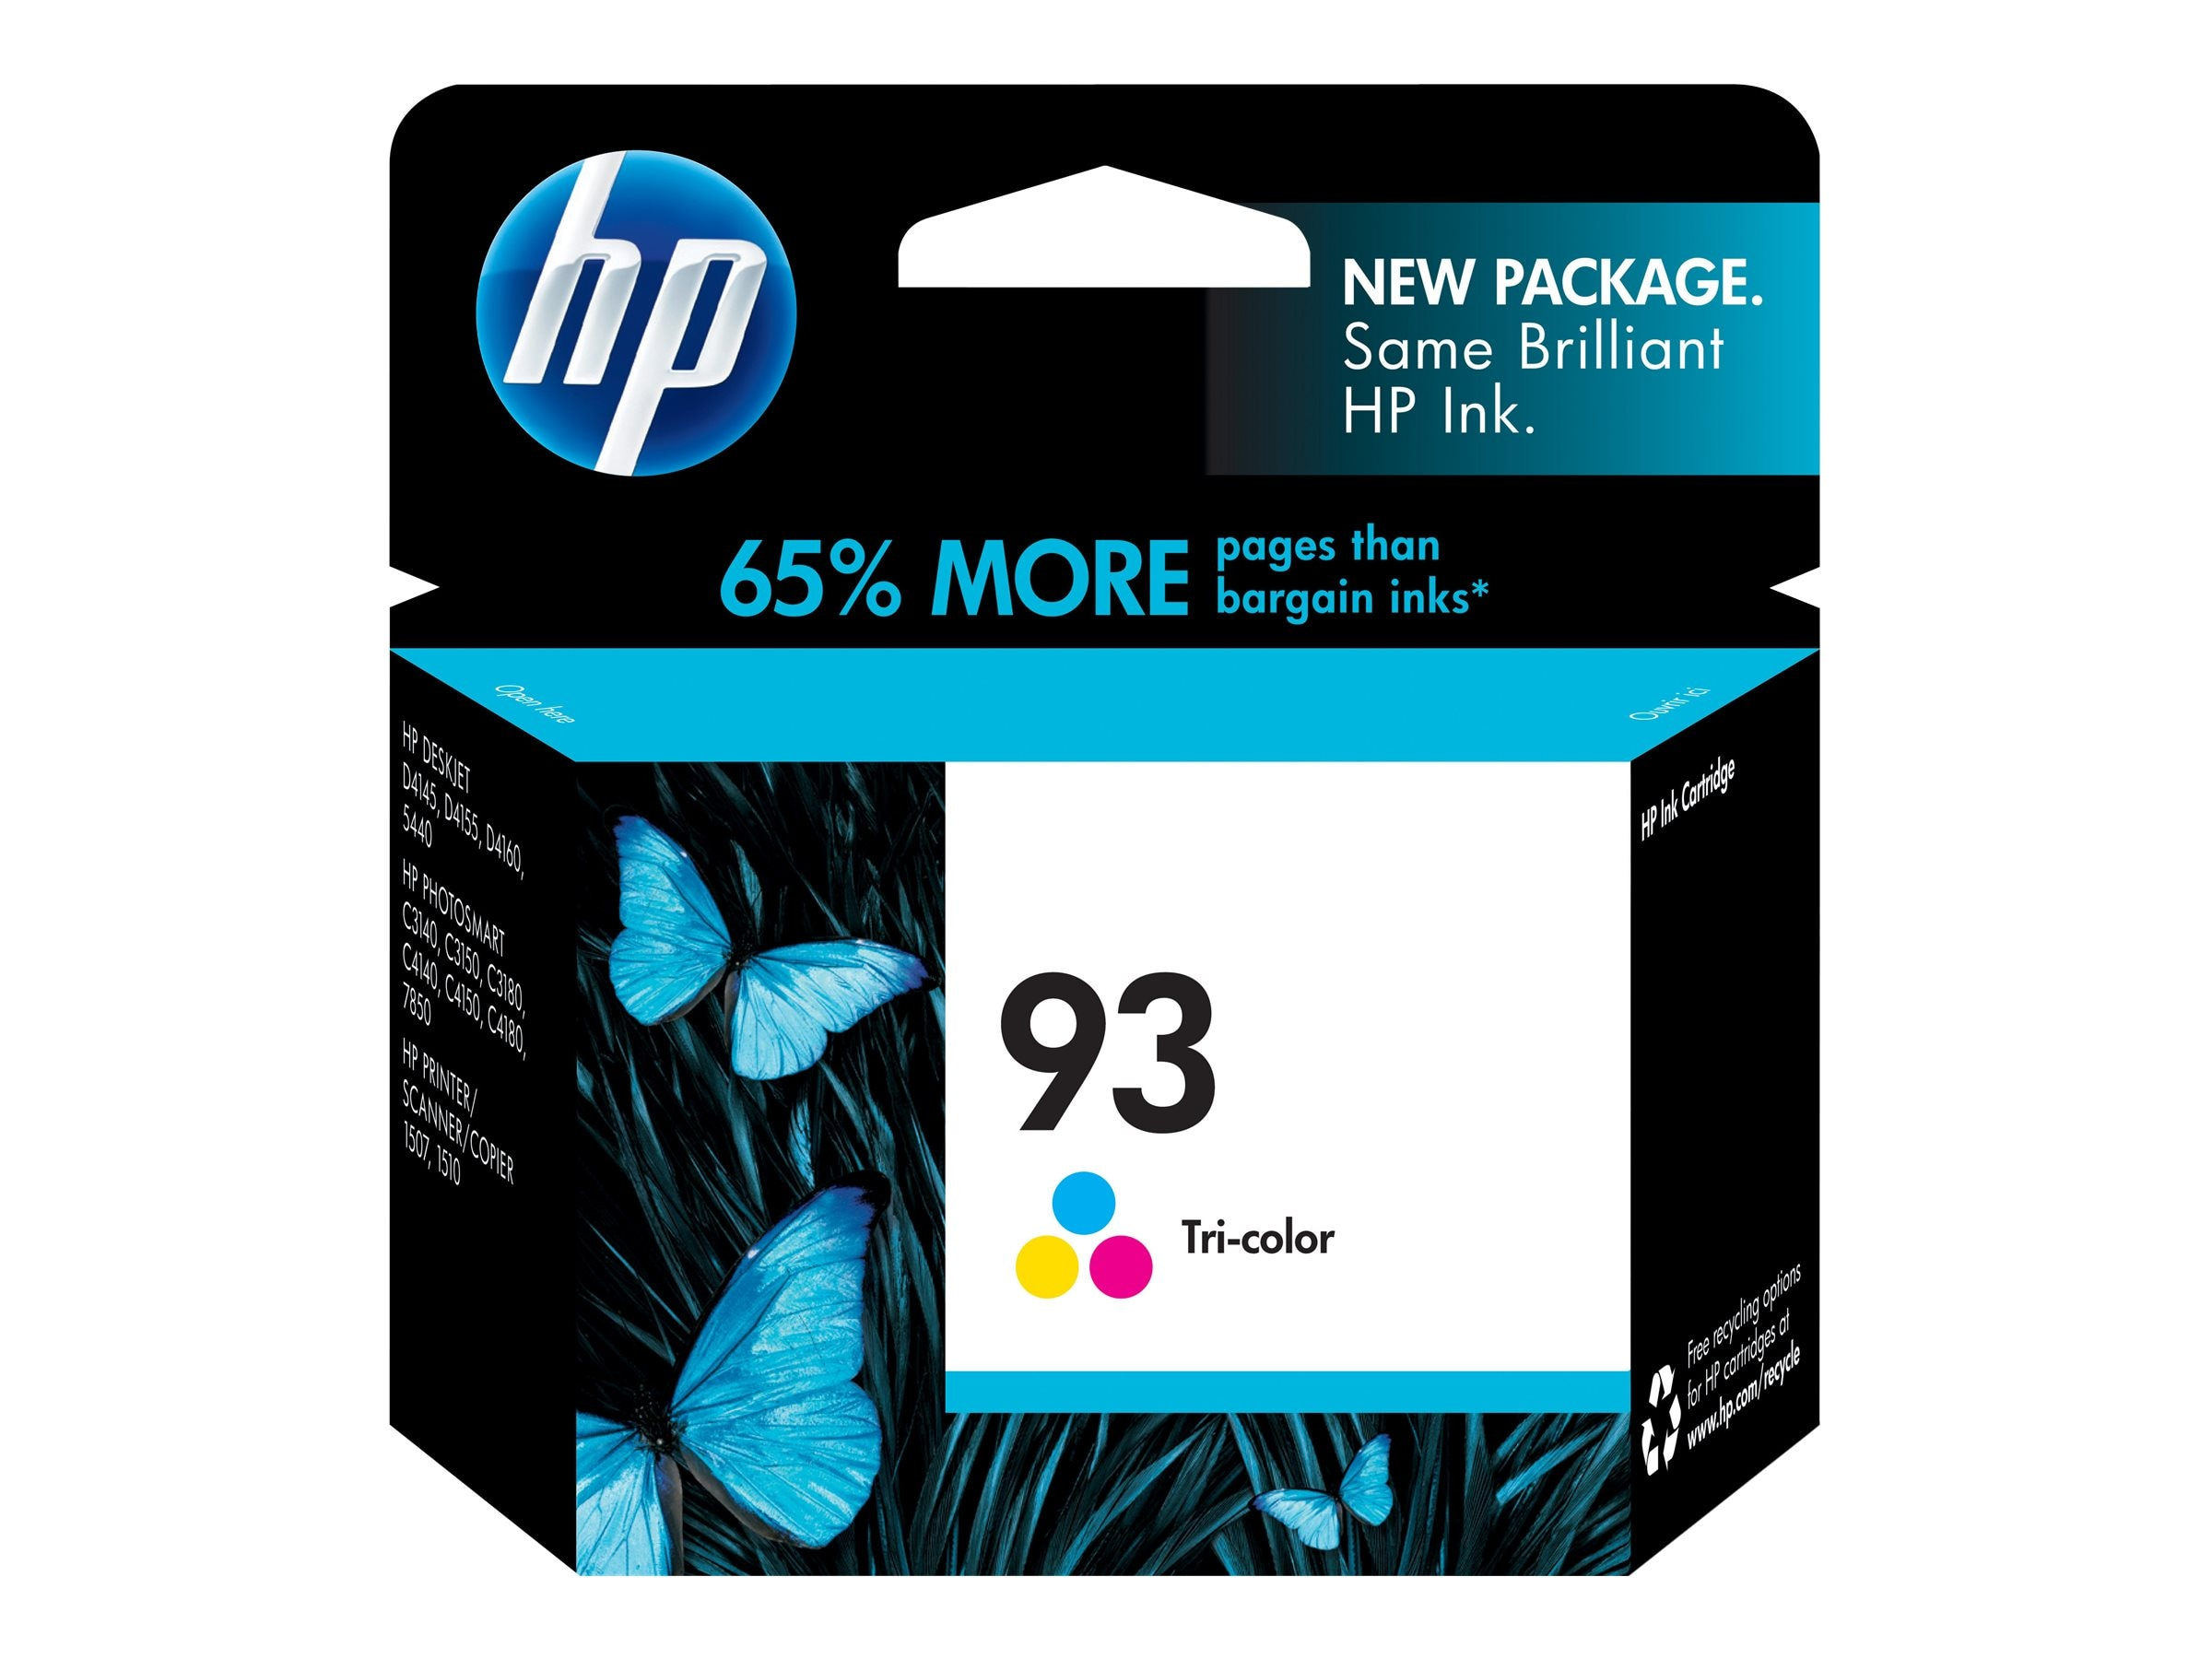 HP Inc. C9361WN#140 Image 2